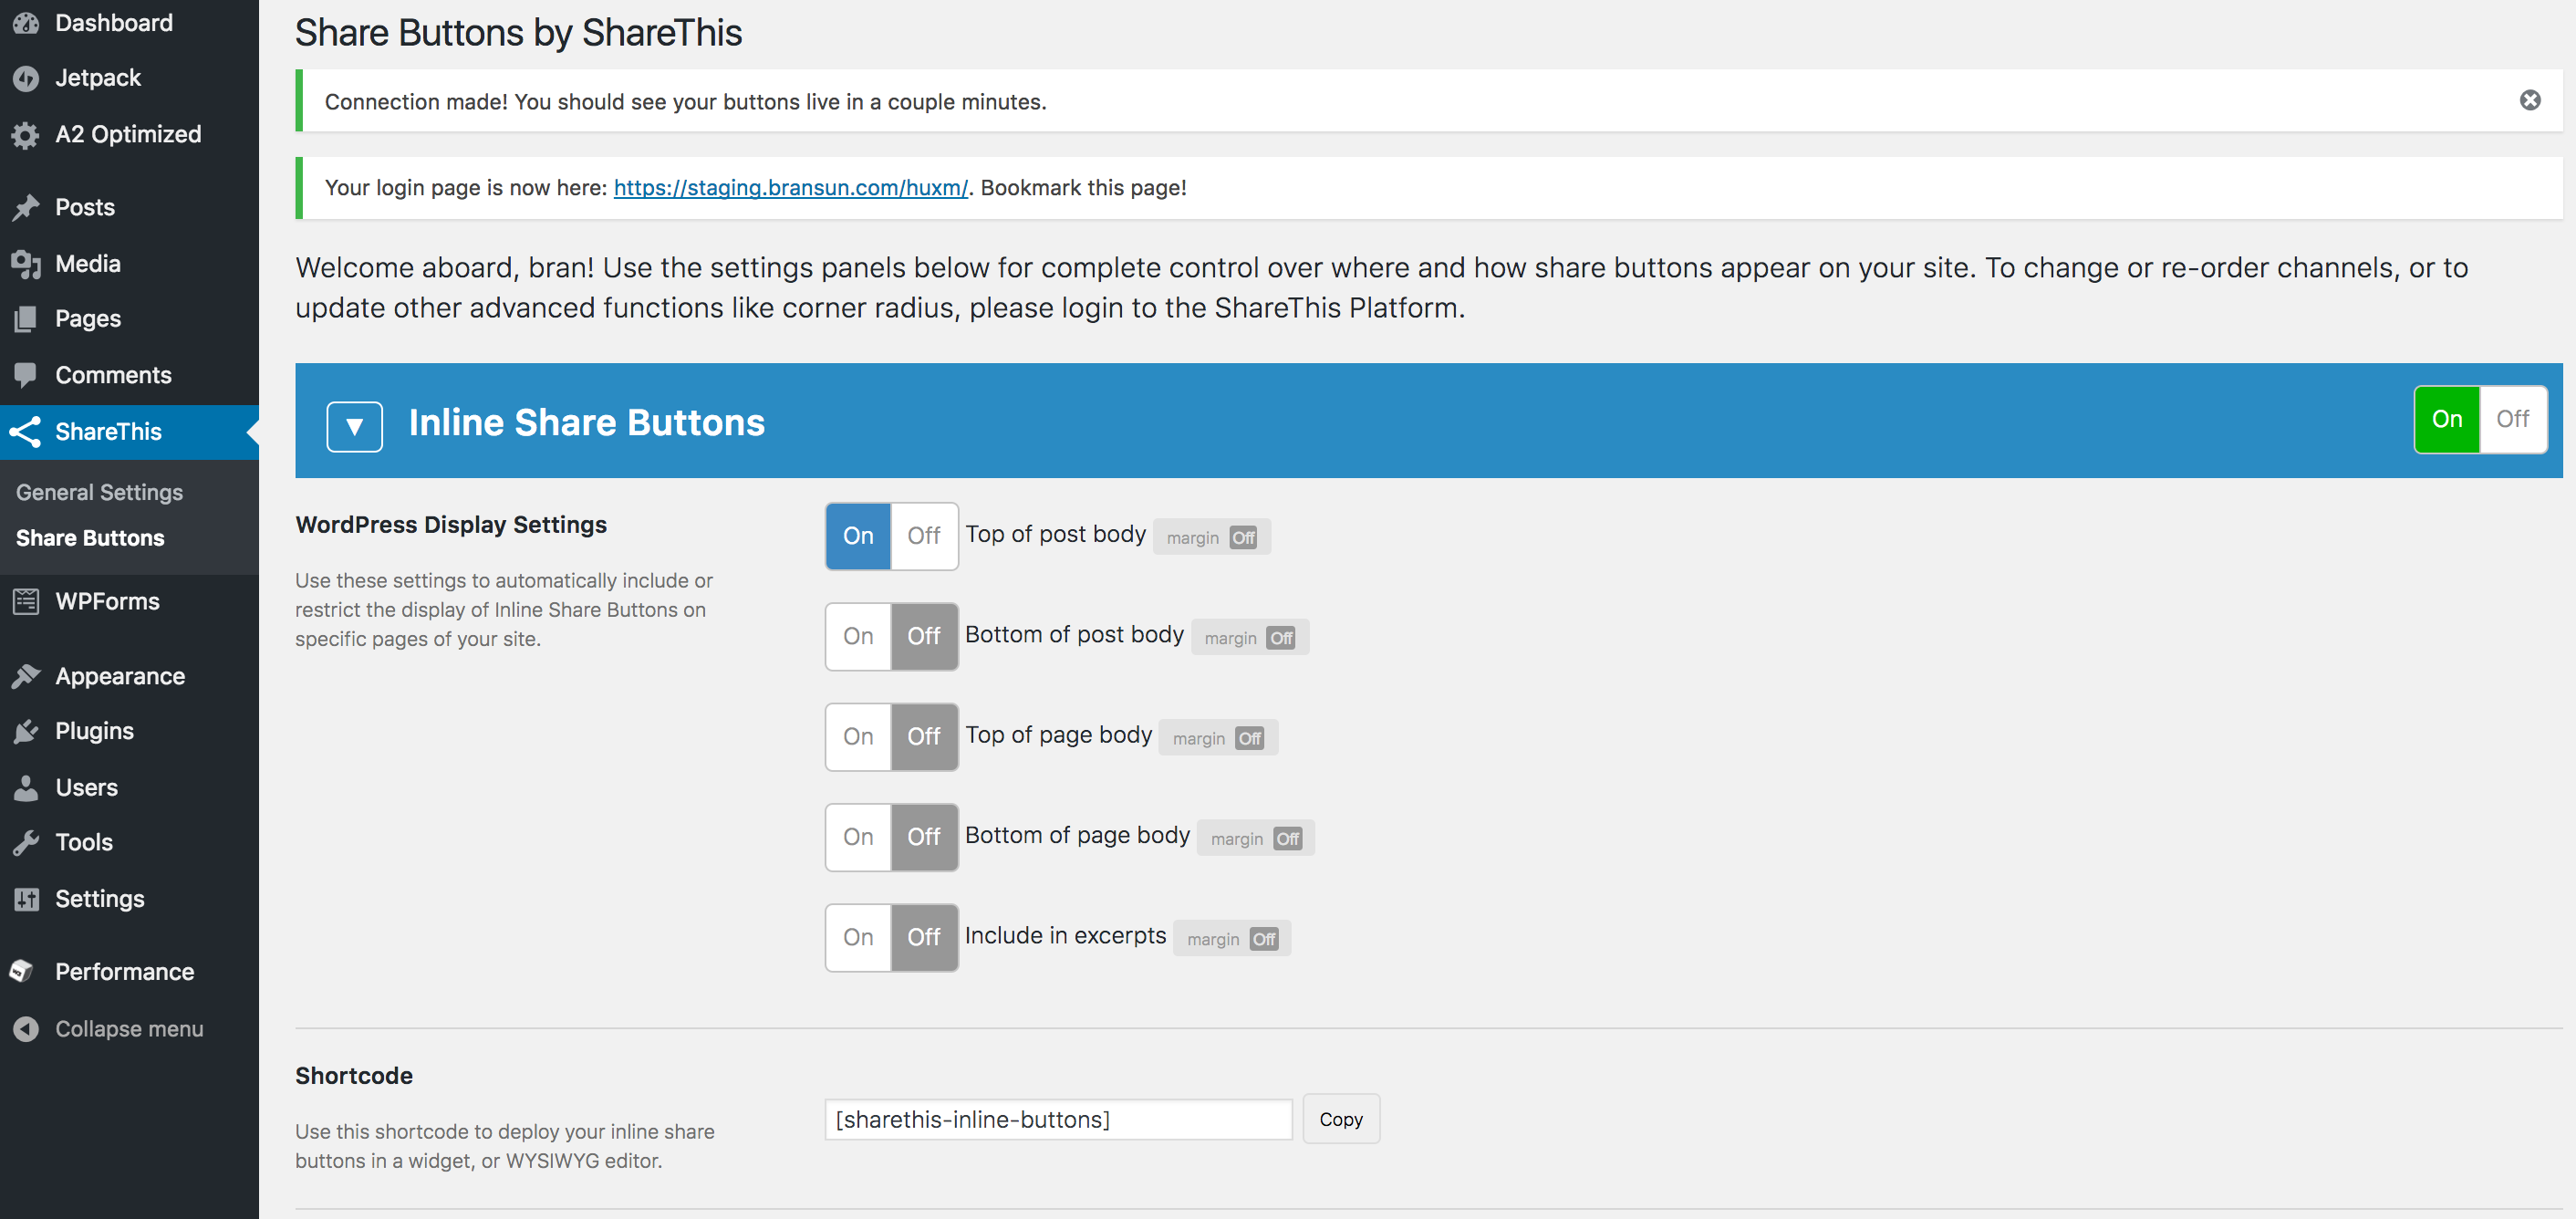 NEW): How to Install Share Buttons on Wordpress - ShareThis